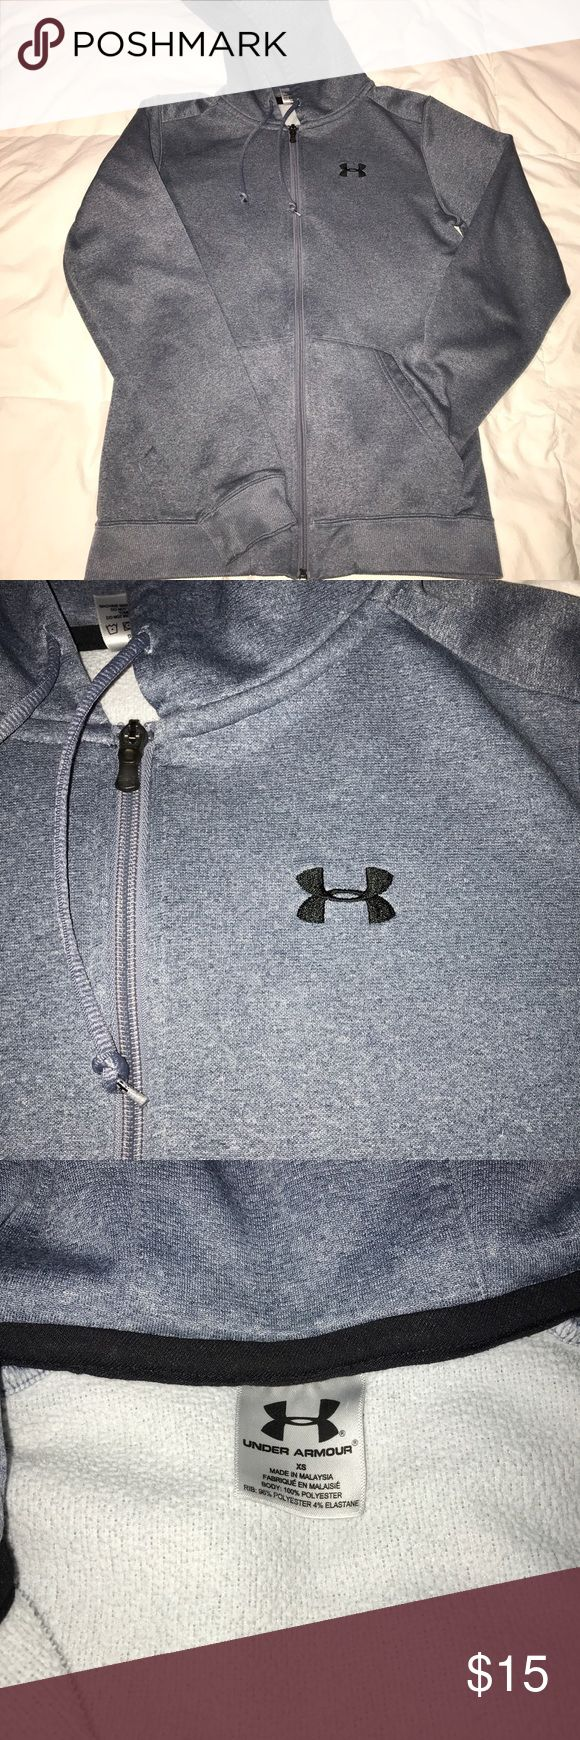 Under Armour Zip Up Hoodie This hoodie is such a go to staple in the fall and winter! Looks good under a leather jacket or just by itself. Definitely perfect for the gym too! Under Armour Tops Sweatshirts & Hoodies